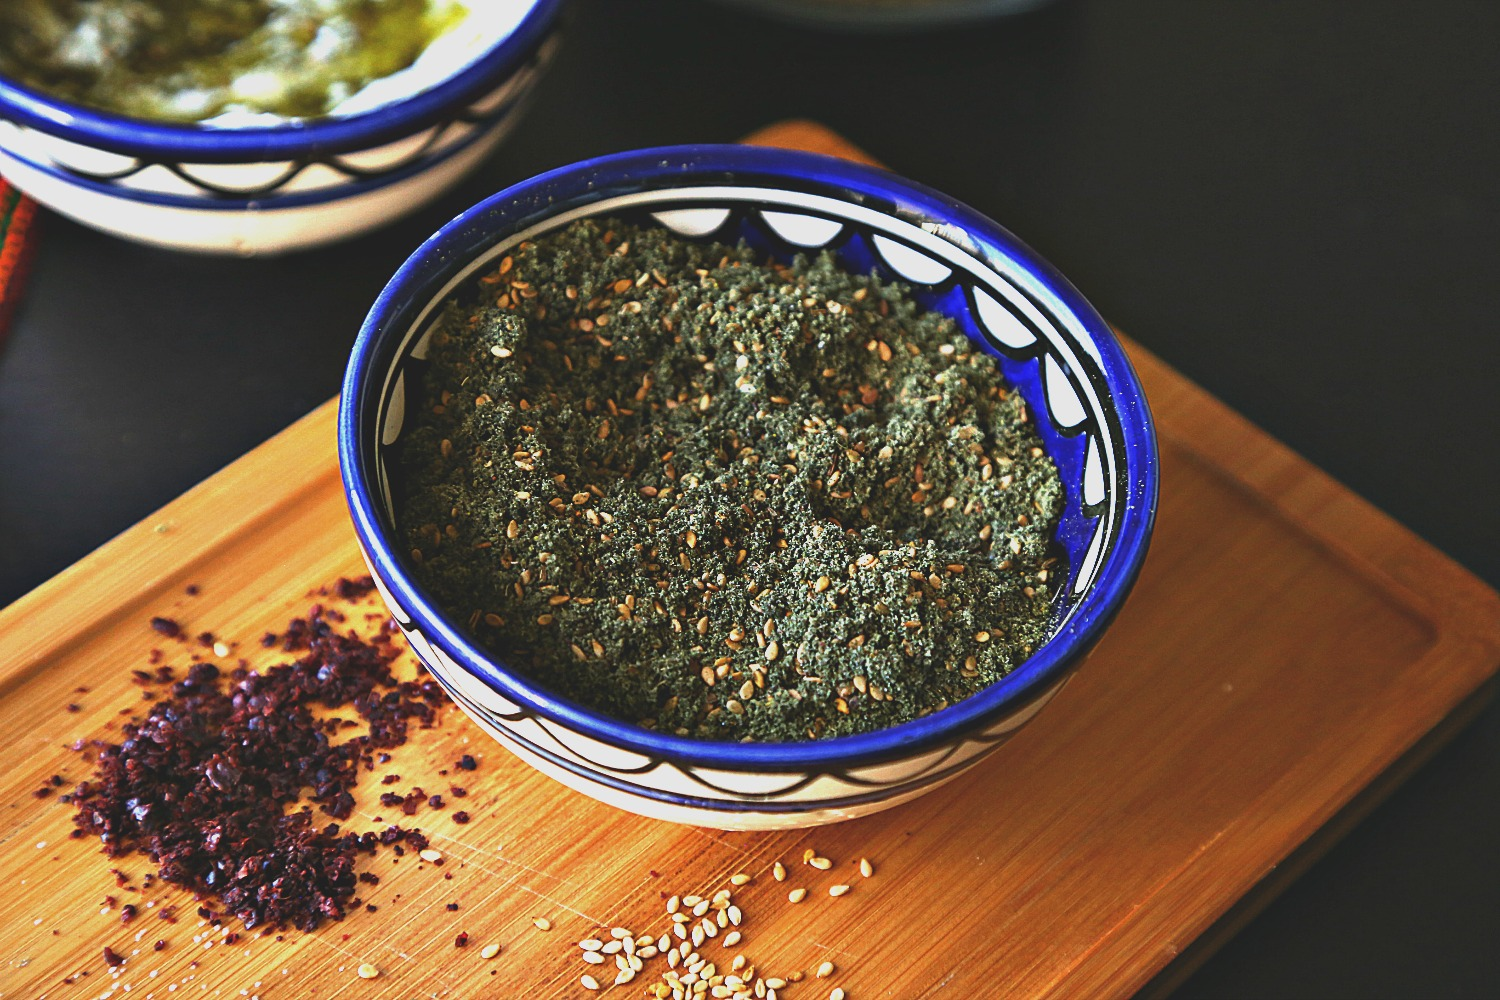 How to Make Za'atar (Spice Blend) From Scratch